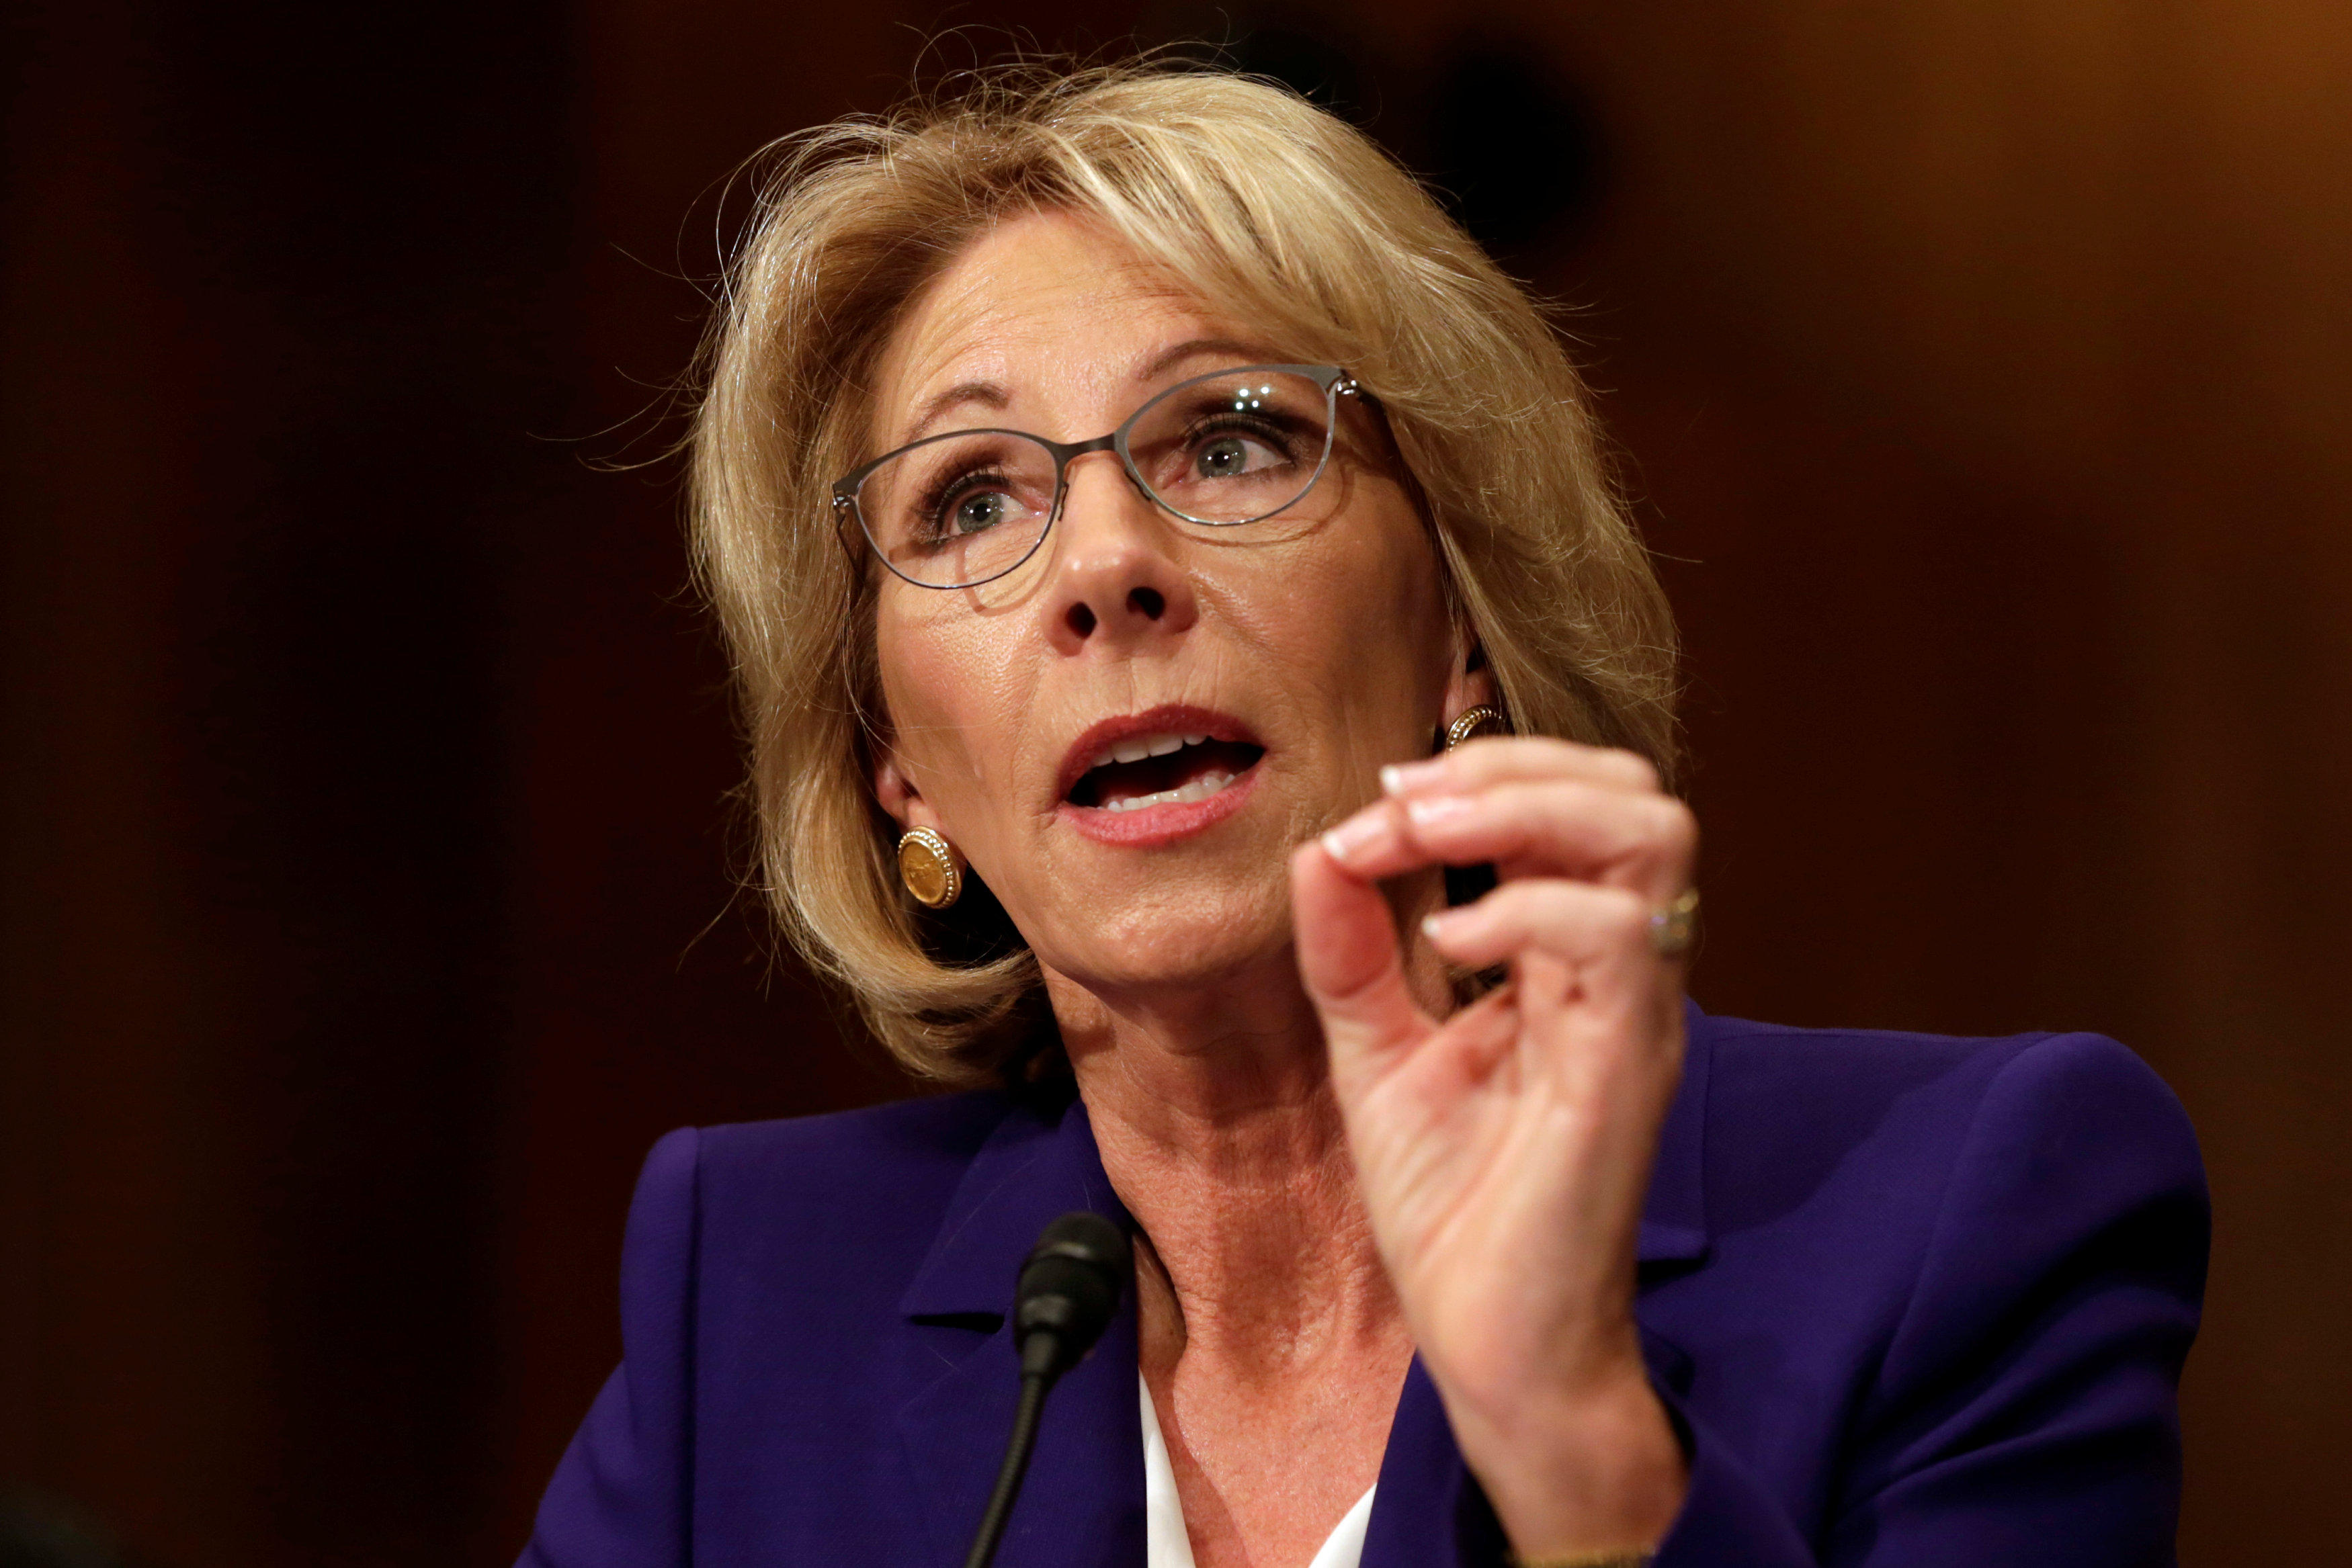 Betsy Devos Trumps Education Pick Plays >> Education Pick Betsy Devos Cites Grizzlies In Wyoming When Asked